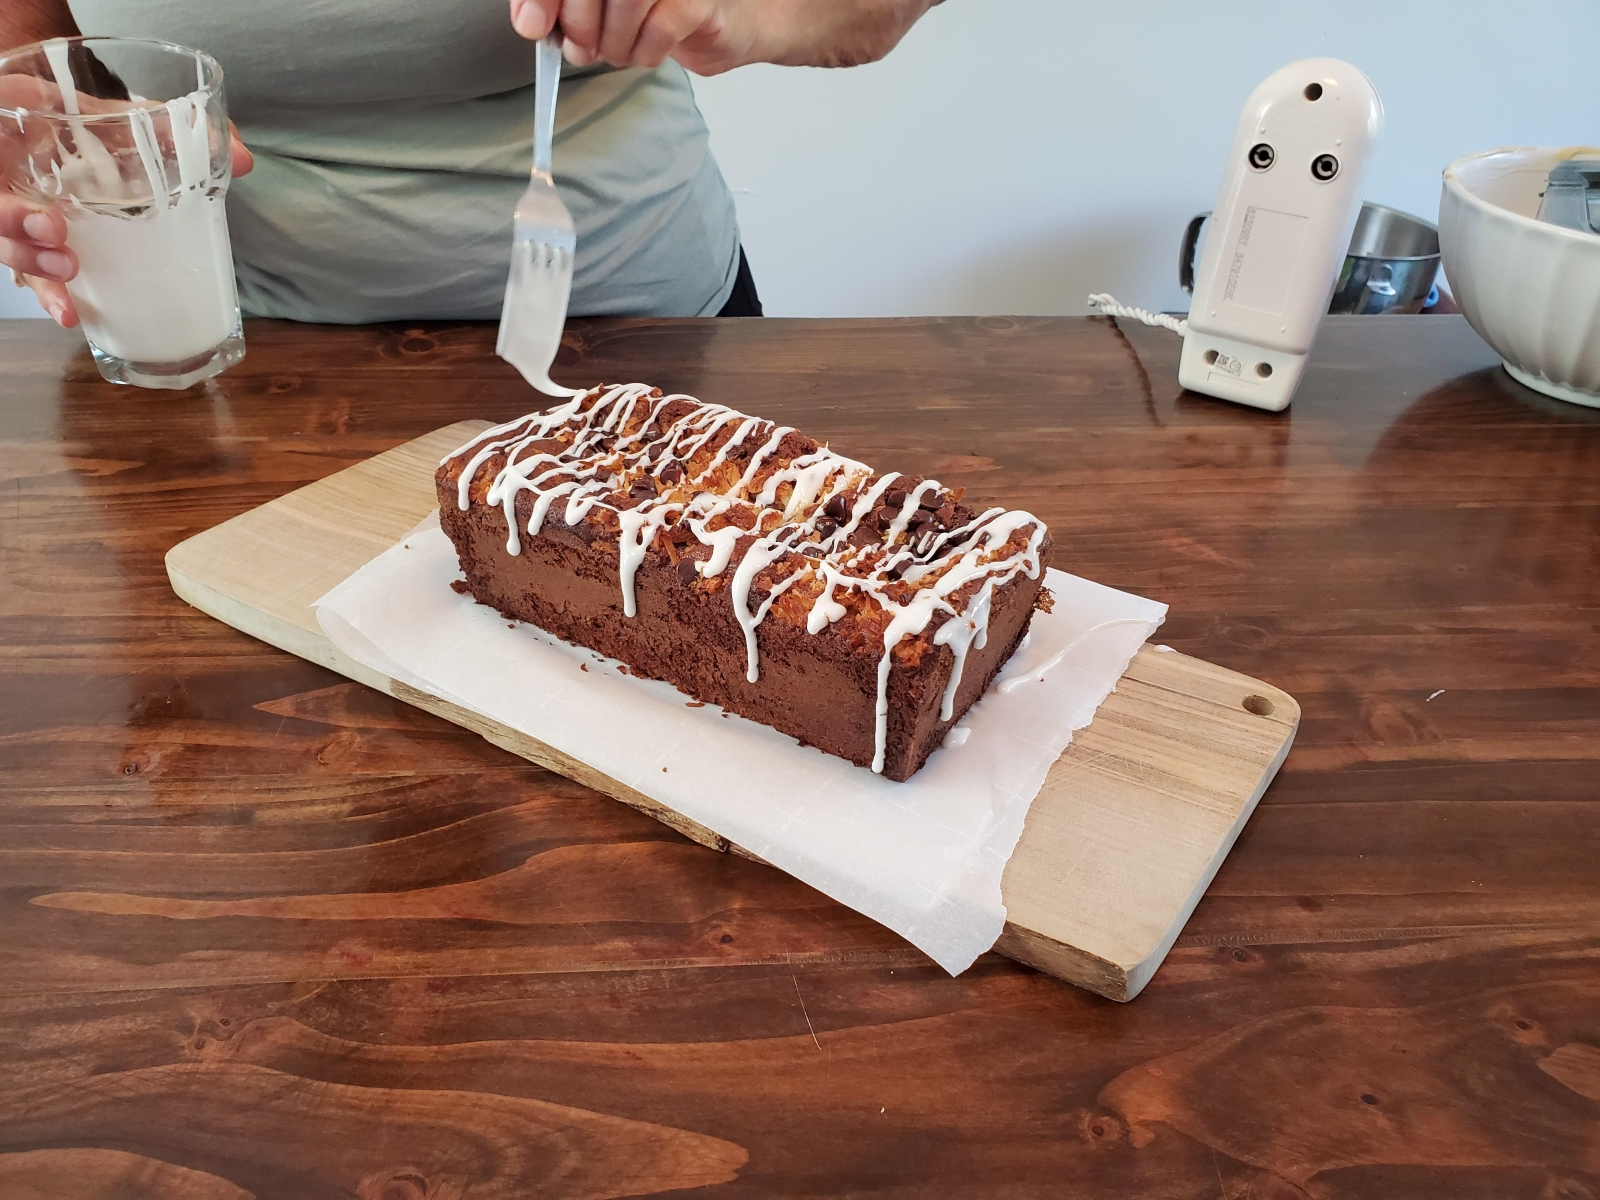 Image of cooked Tropical Banana Bread being topped with glaze